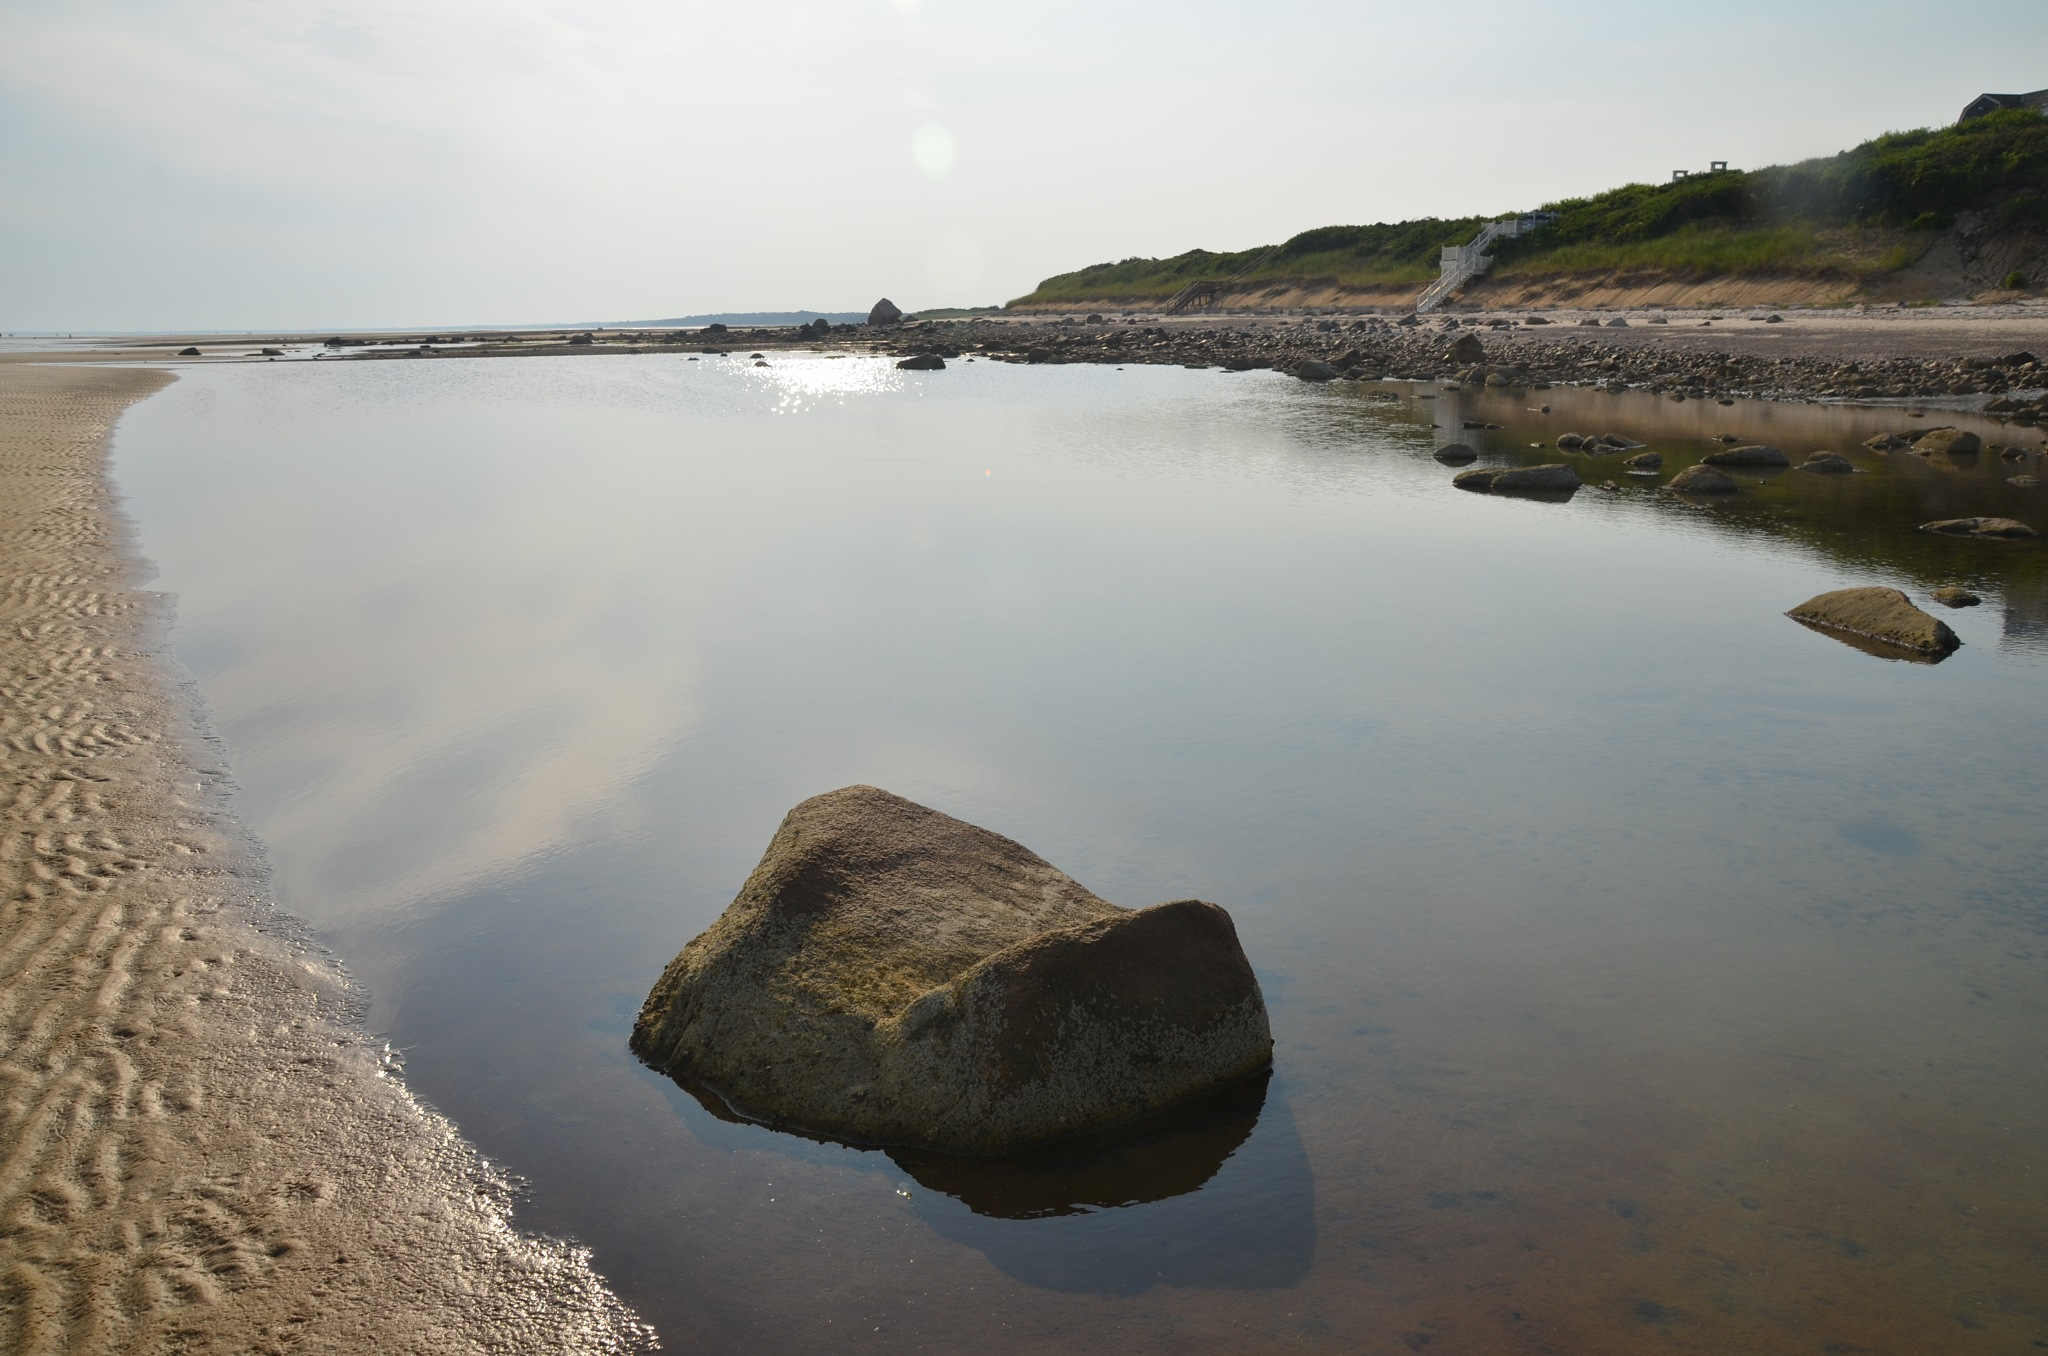 Tidal Pool ~ The Brewster Flats  ~  East Dennis   ~ July 21, 2017 by domenic.silvi